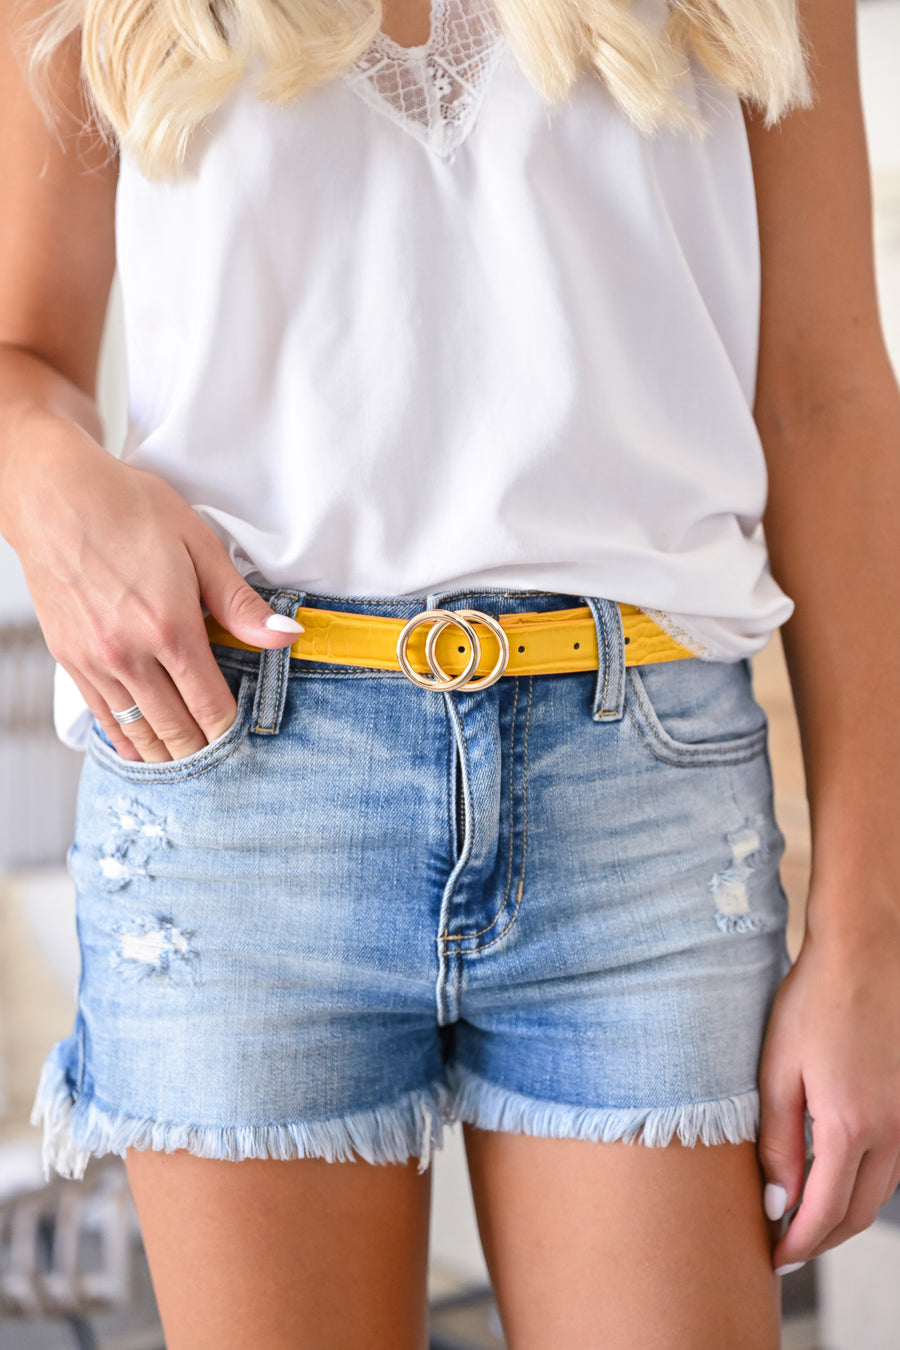 The Essentials Textured Skinny Belt - Mustard womens trendy crocodile texture skinny belt closet candy front